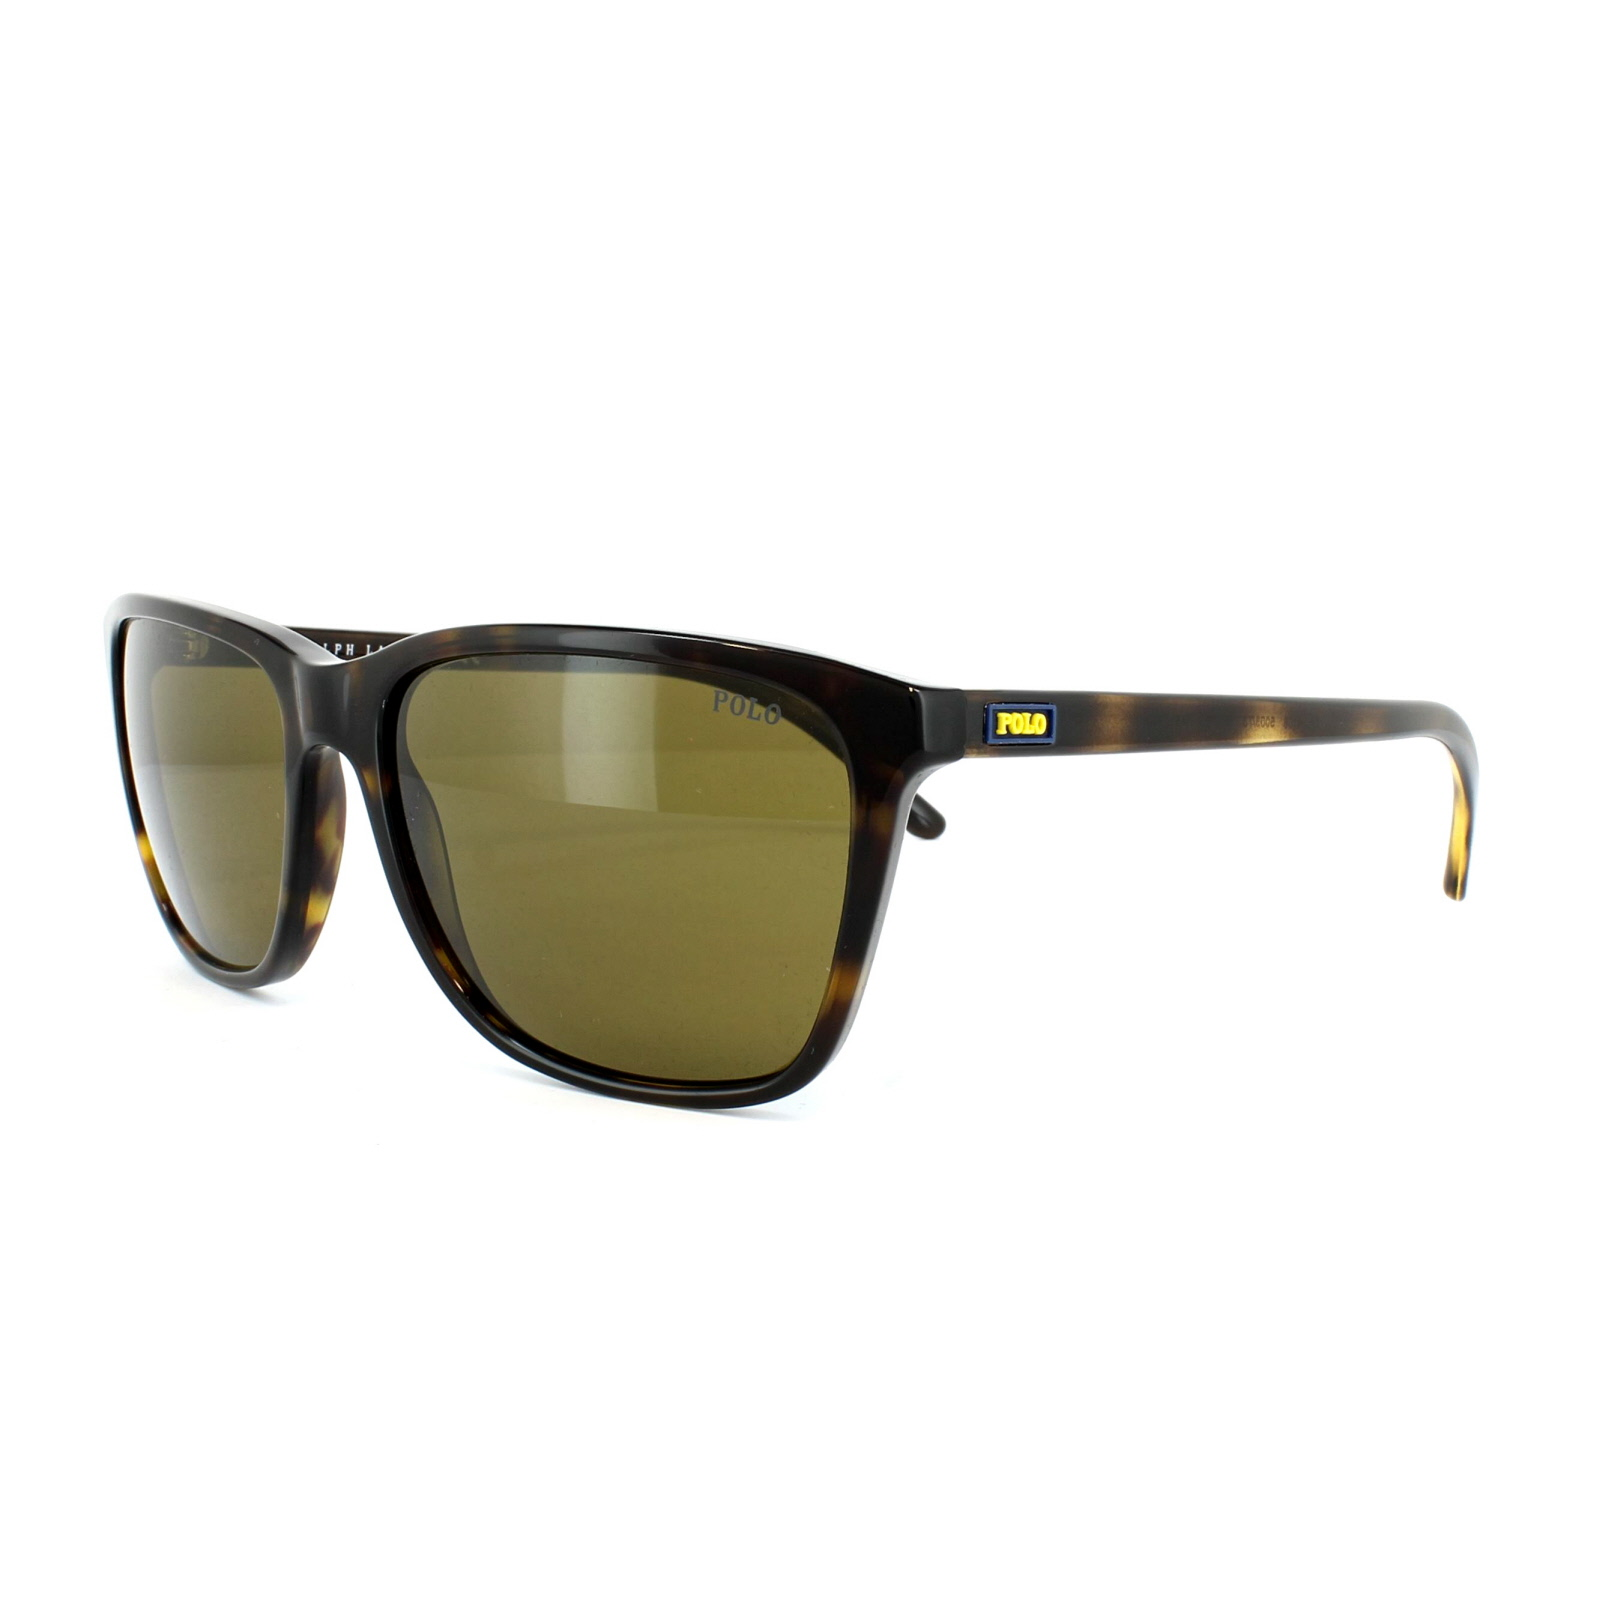 8fad8b56e77 Sentinel Polo Ralph Lauren Sunglasses 4108 500373 Dark Havana Brown